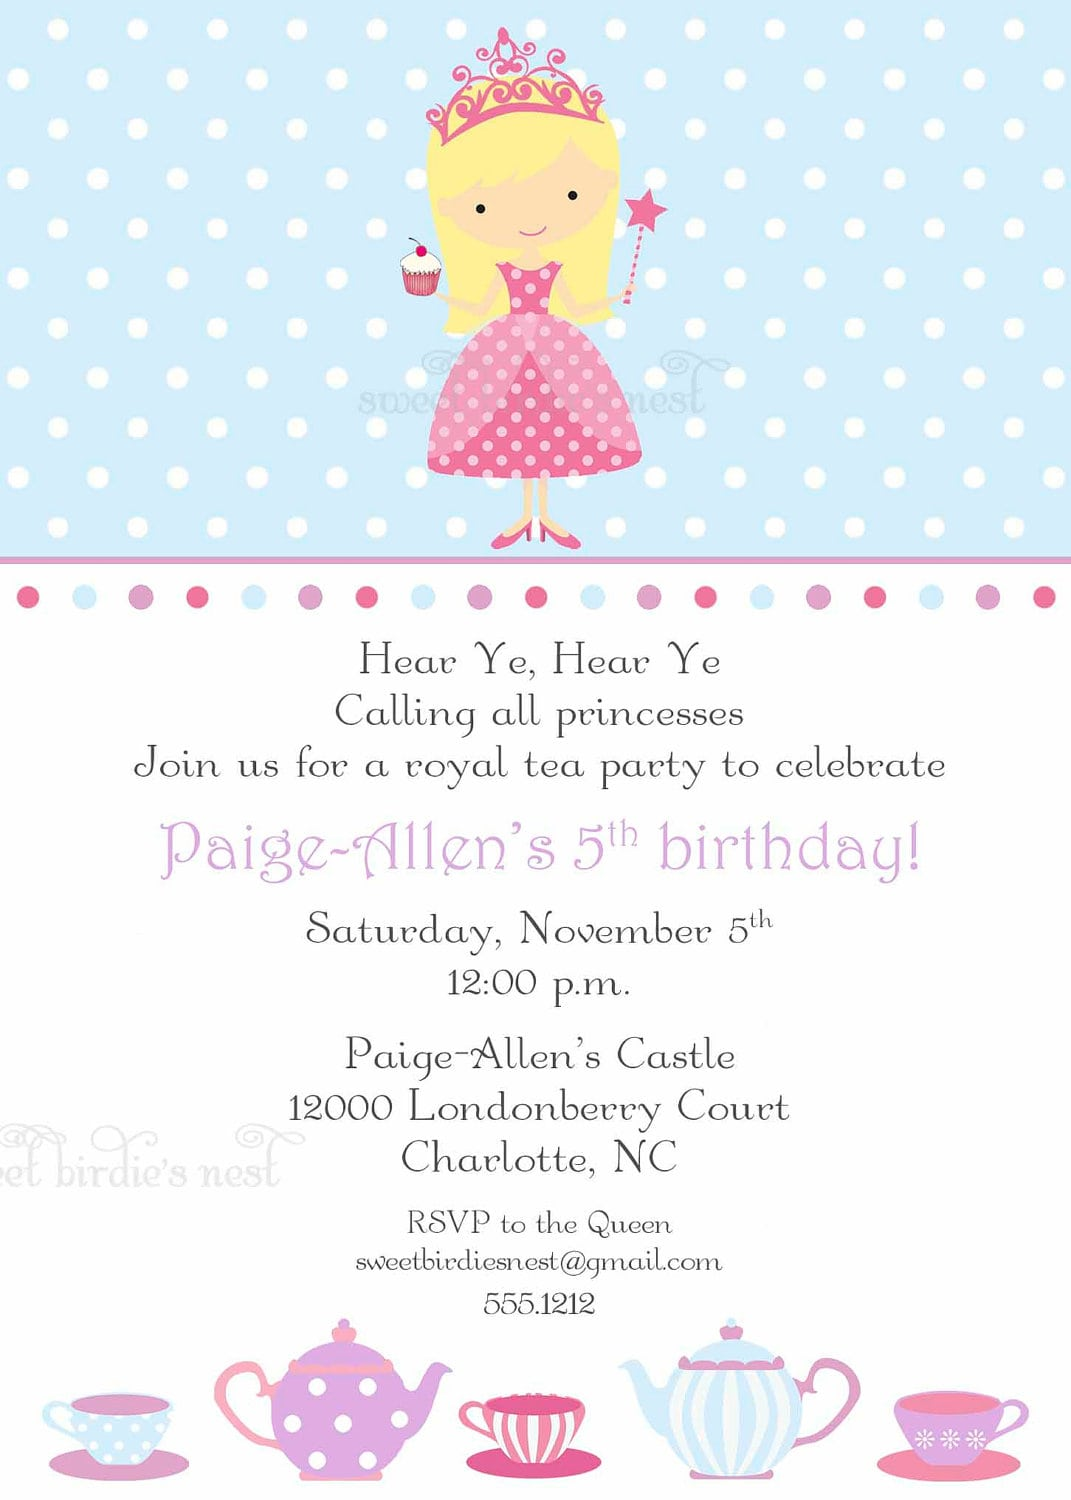 Princess Party Invitations Princess Party Invitations As Party